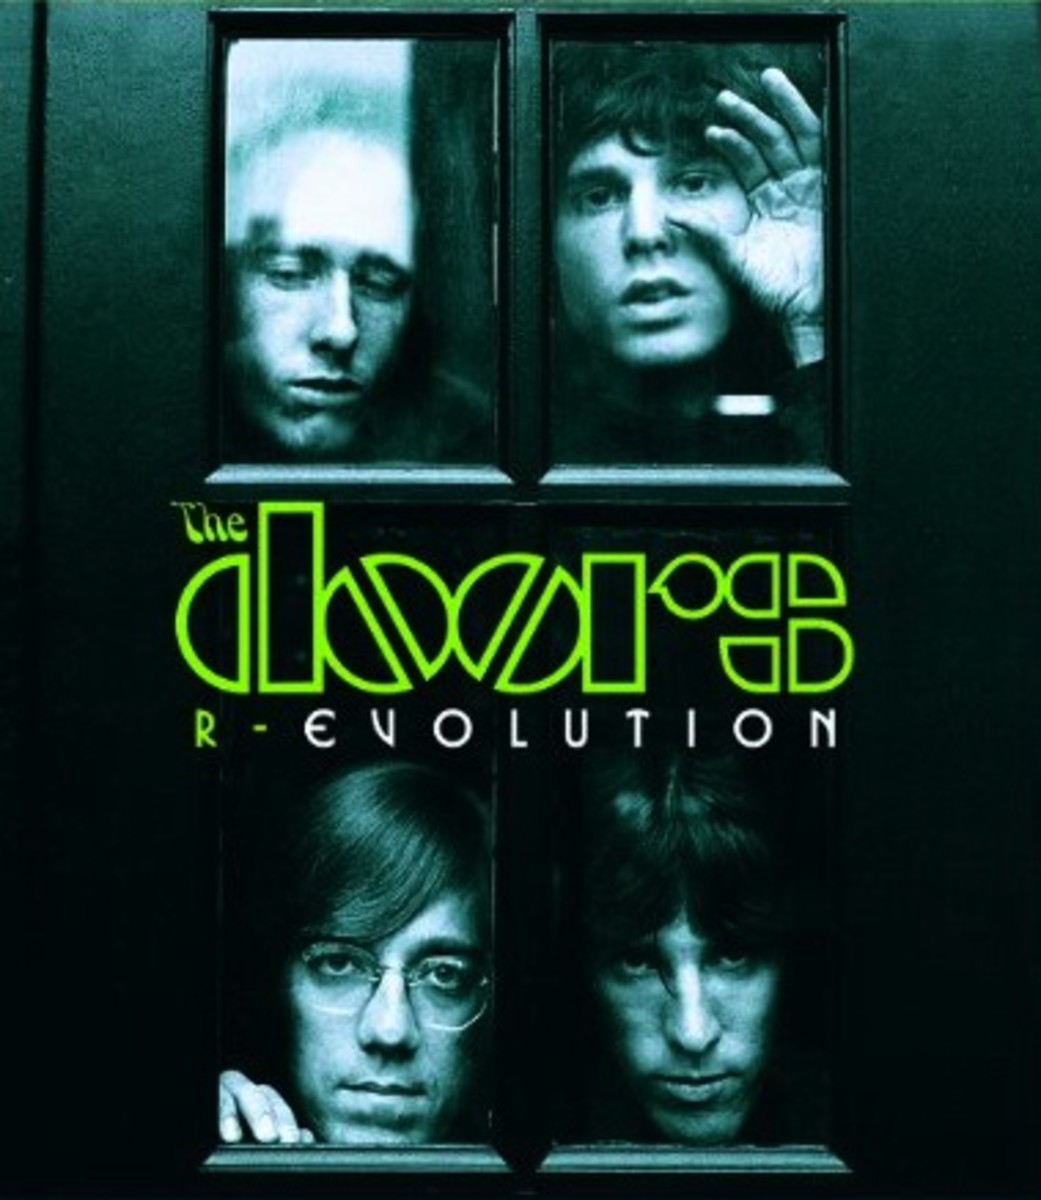 Doors_R-Evolution cover